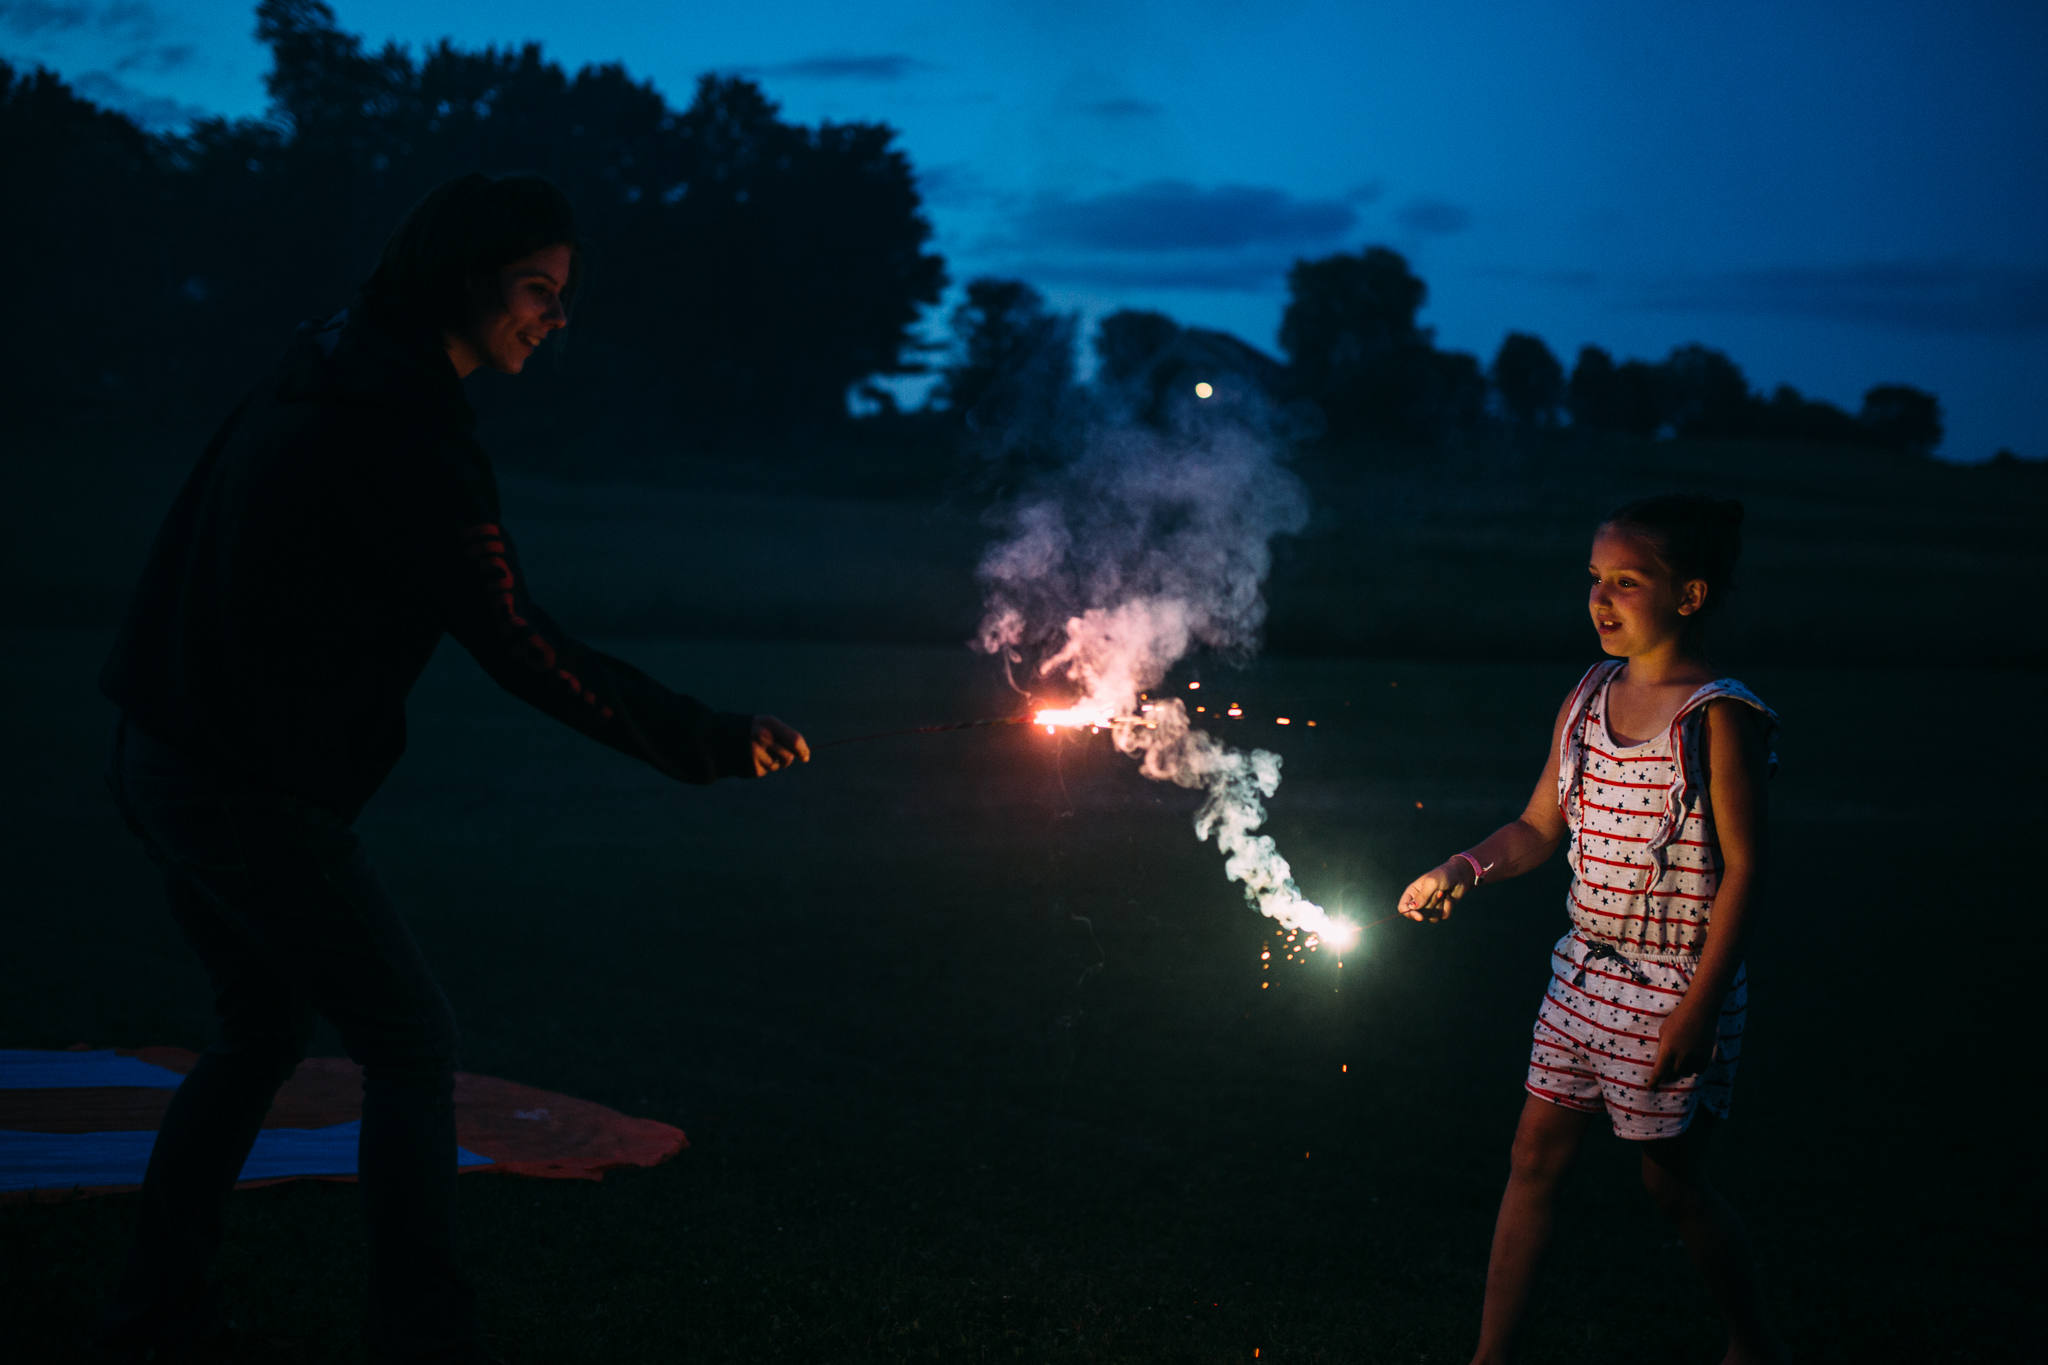 4th-july-fireworks-sparklers-documentary-family-party-photography-7.jpg